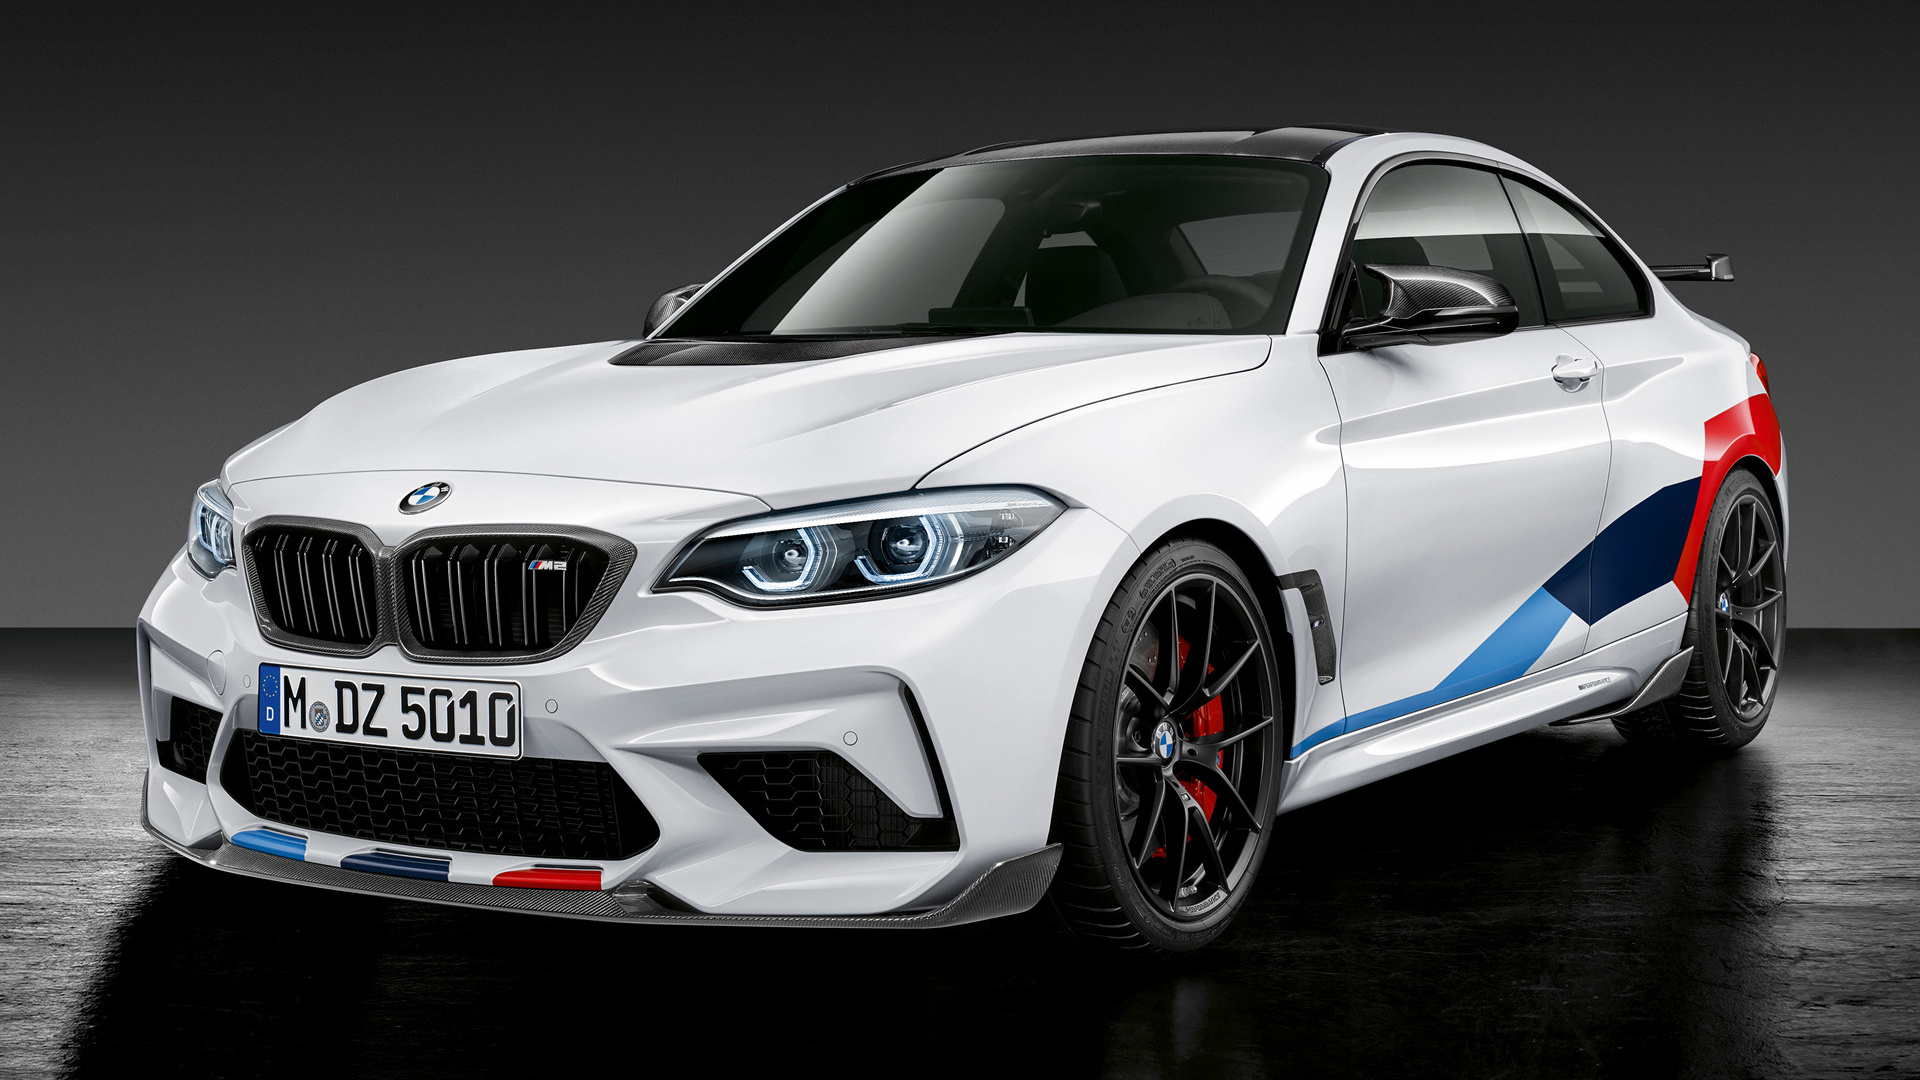 2018 Bmw M2 Coupe Competition With M Performance Parts